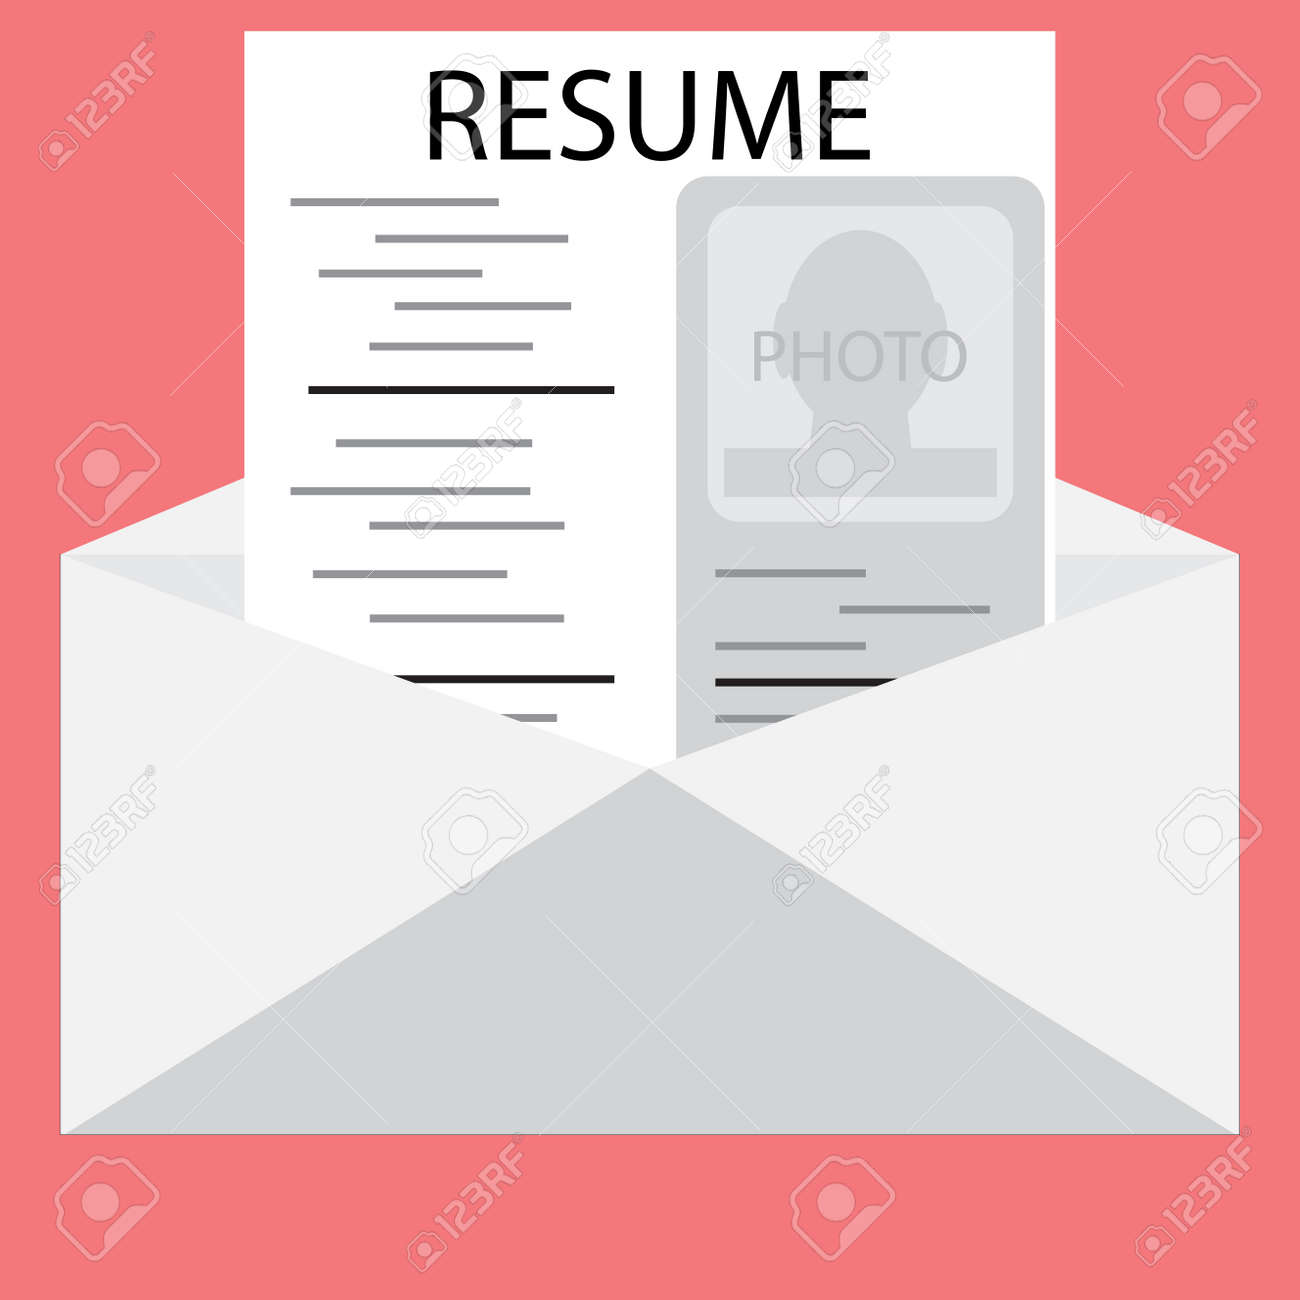 templates resume in an envelope invite to job interview job